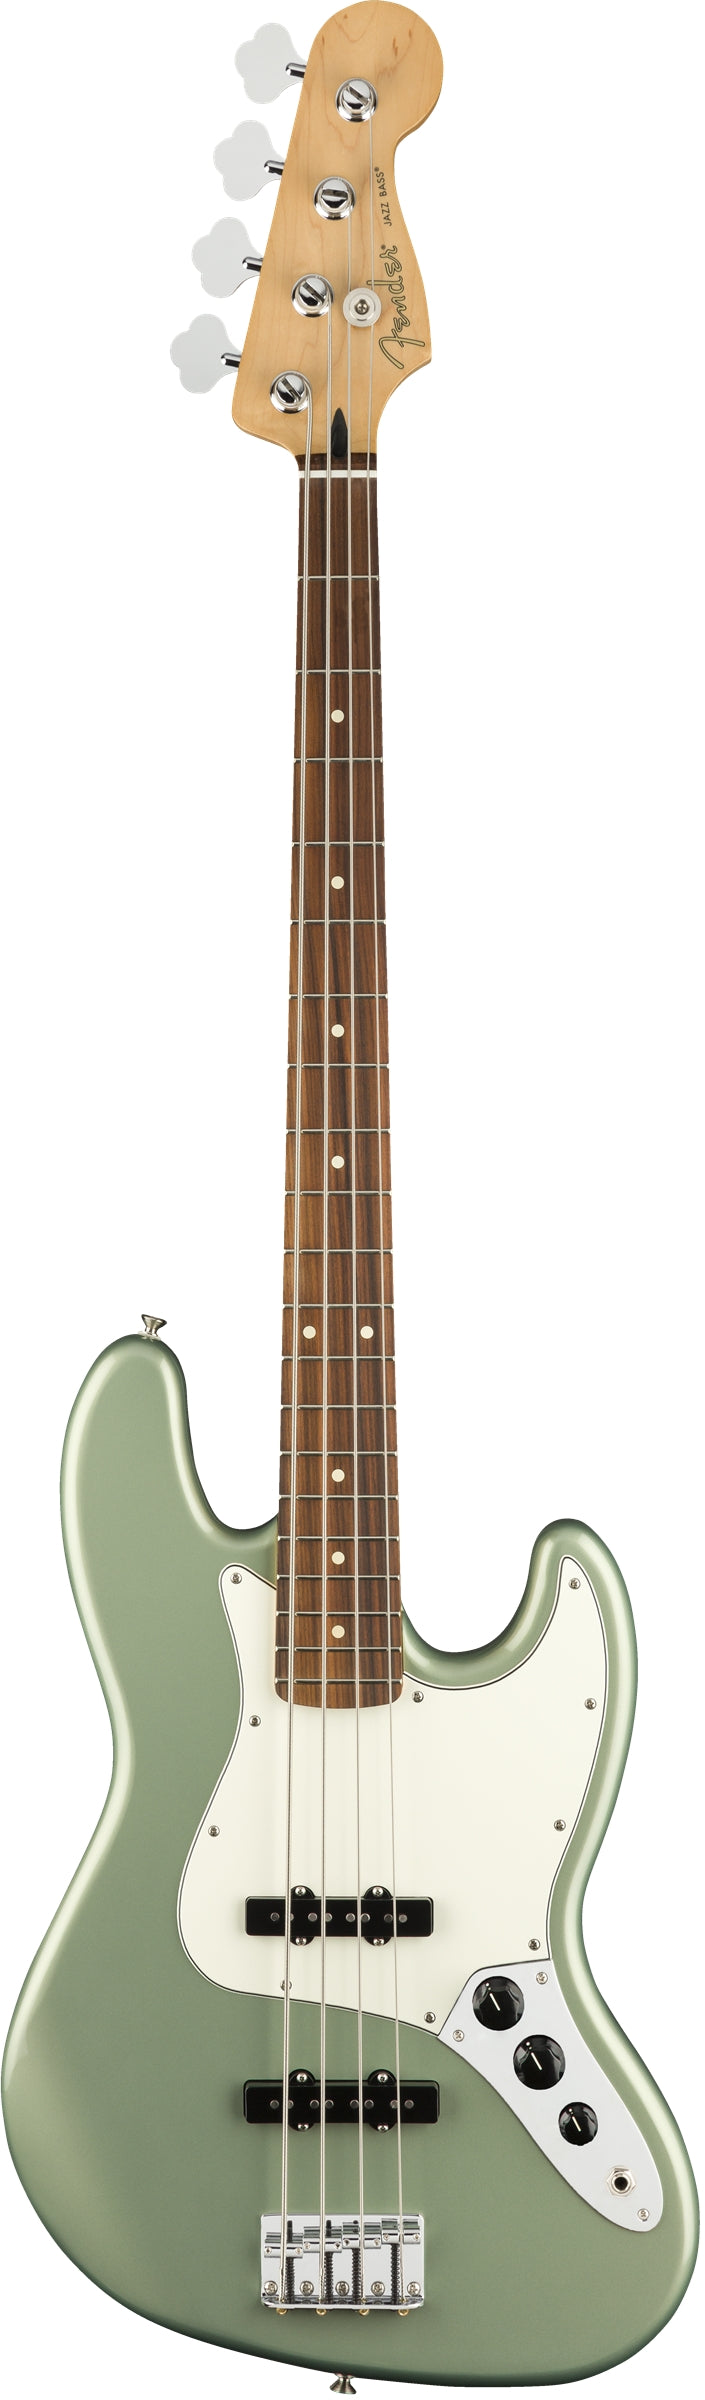 Fender Player Jazz Bass w/Pau Ferro Fingerboard